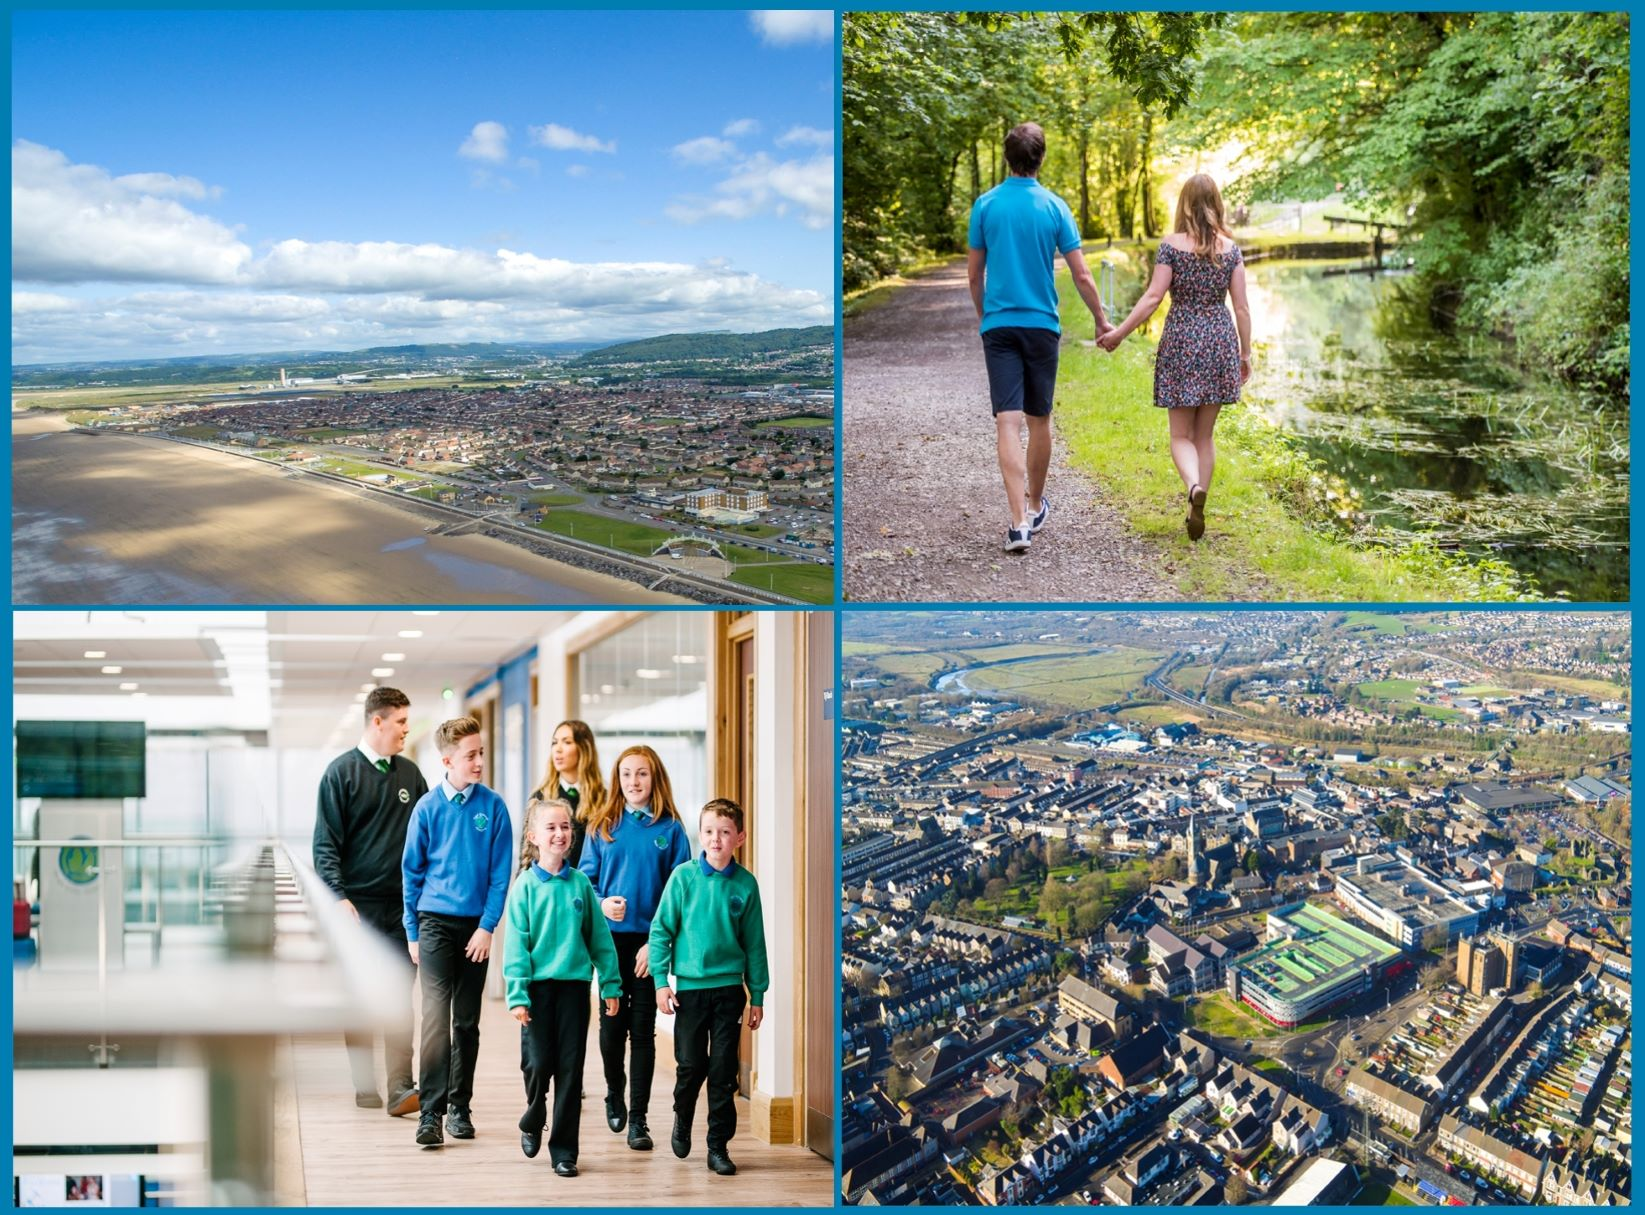 The Capital Programme for 2019/20 currently stands at £44.821m and there will extra funding of just over £5m from the Welsh Government which can be used up to the financial year 2020/21.